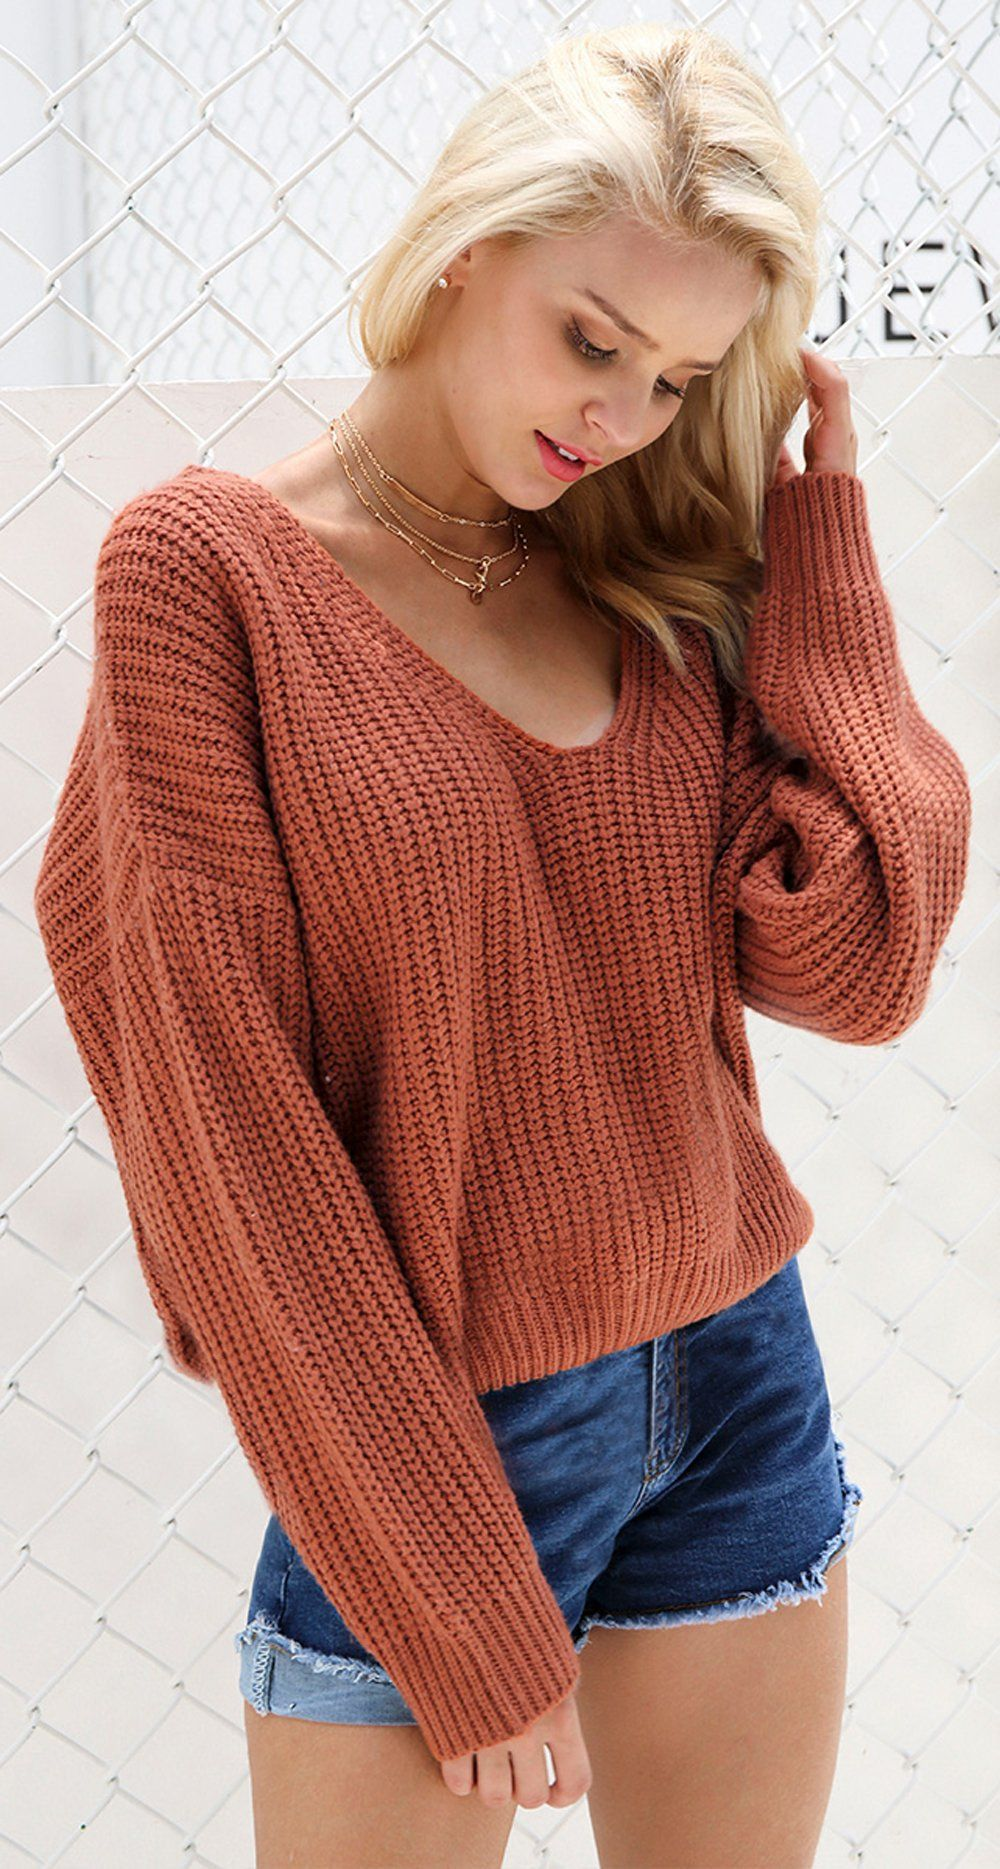 d2afc59c1e Cute Casual Spring Outfit Ideas for Teen Girls for School 2018 Shorts Oversized  Knitted Sweater with Lace Up Back - www.GlamantiBeauty.com